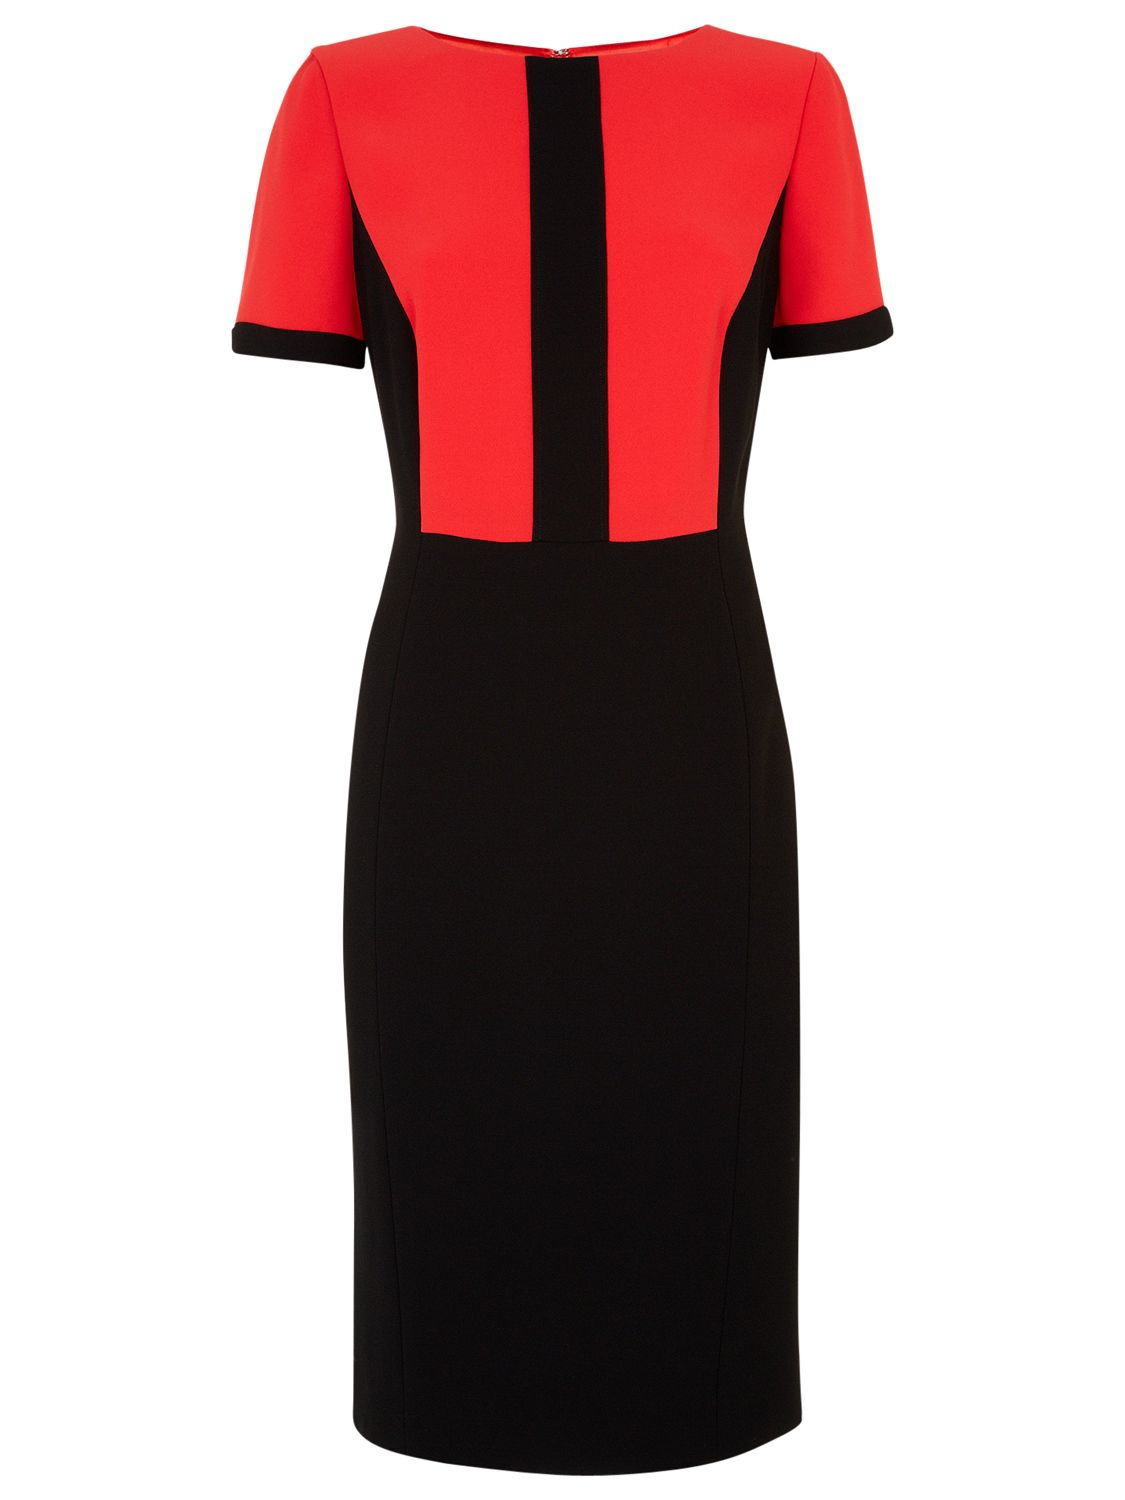 planet colour block dress black / red, planet, colour, block, dress, black, red, 12|20|16|18, clearance, womenswear offers, womens dresses offers, women, plus size, womens dresses, special offers, 1741515